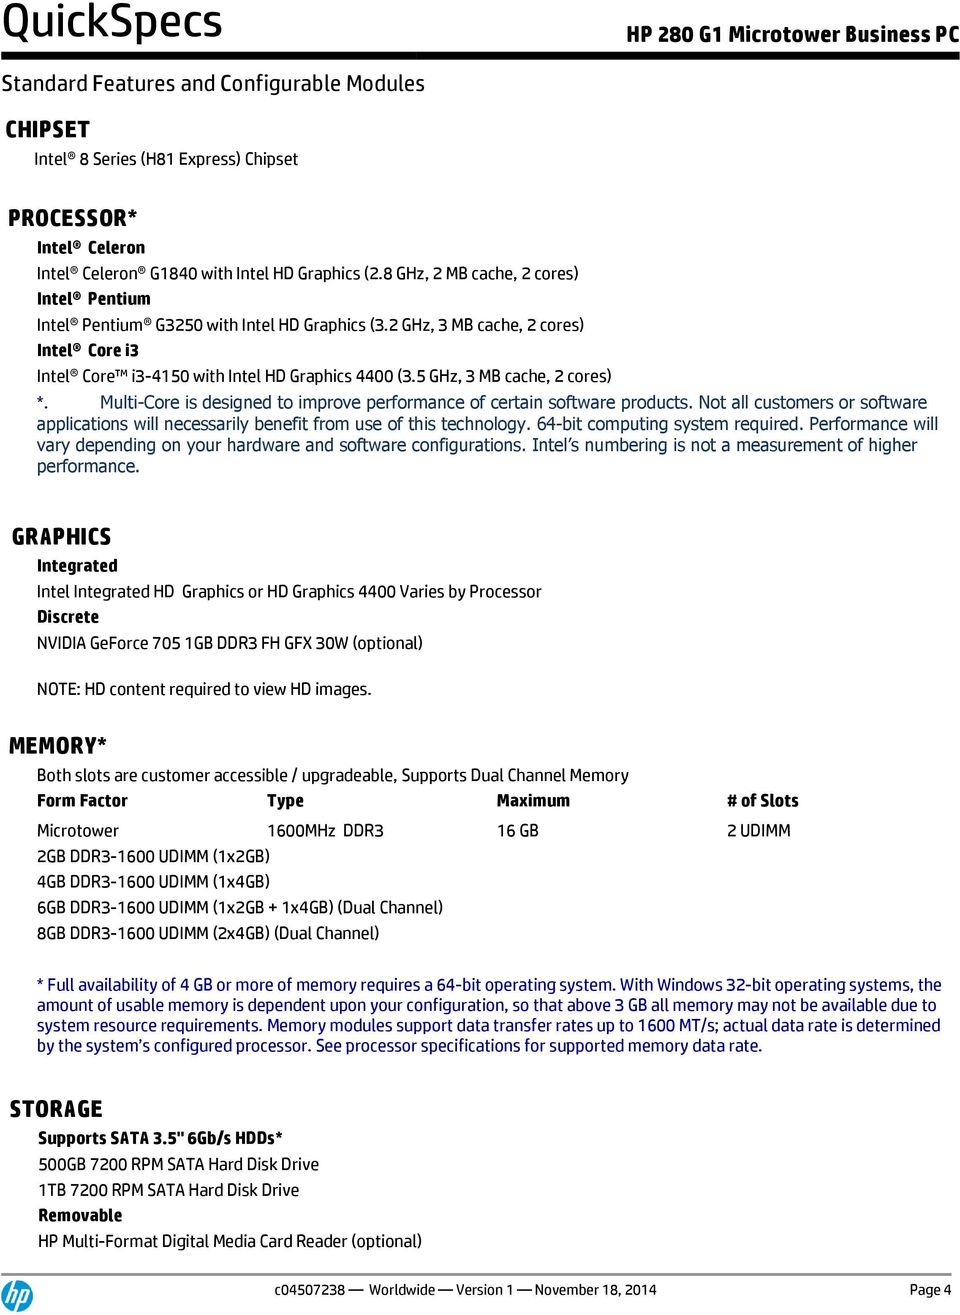 QuickSpecs  HP 280 G1 Microtower Business PC  Overview - PDF